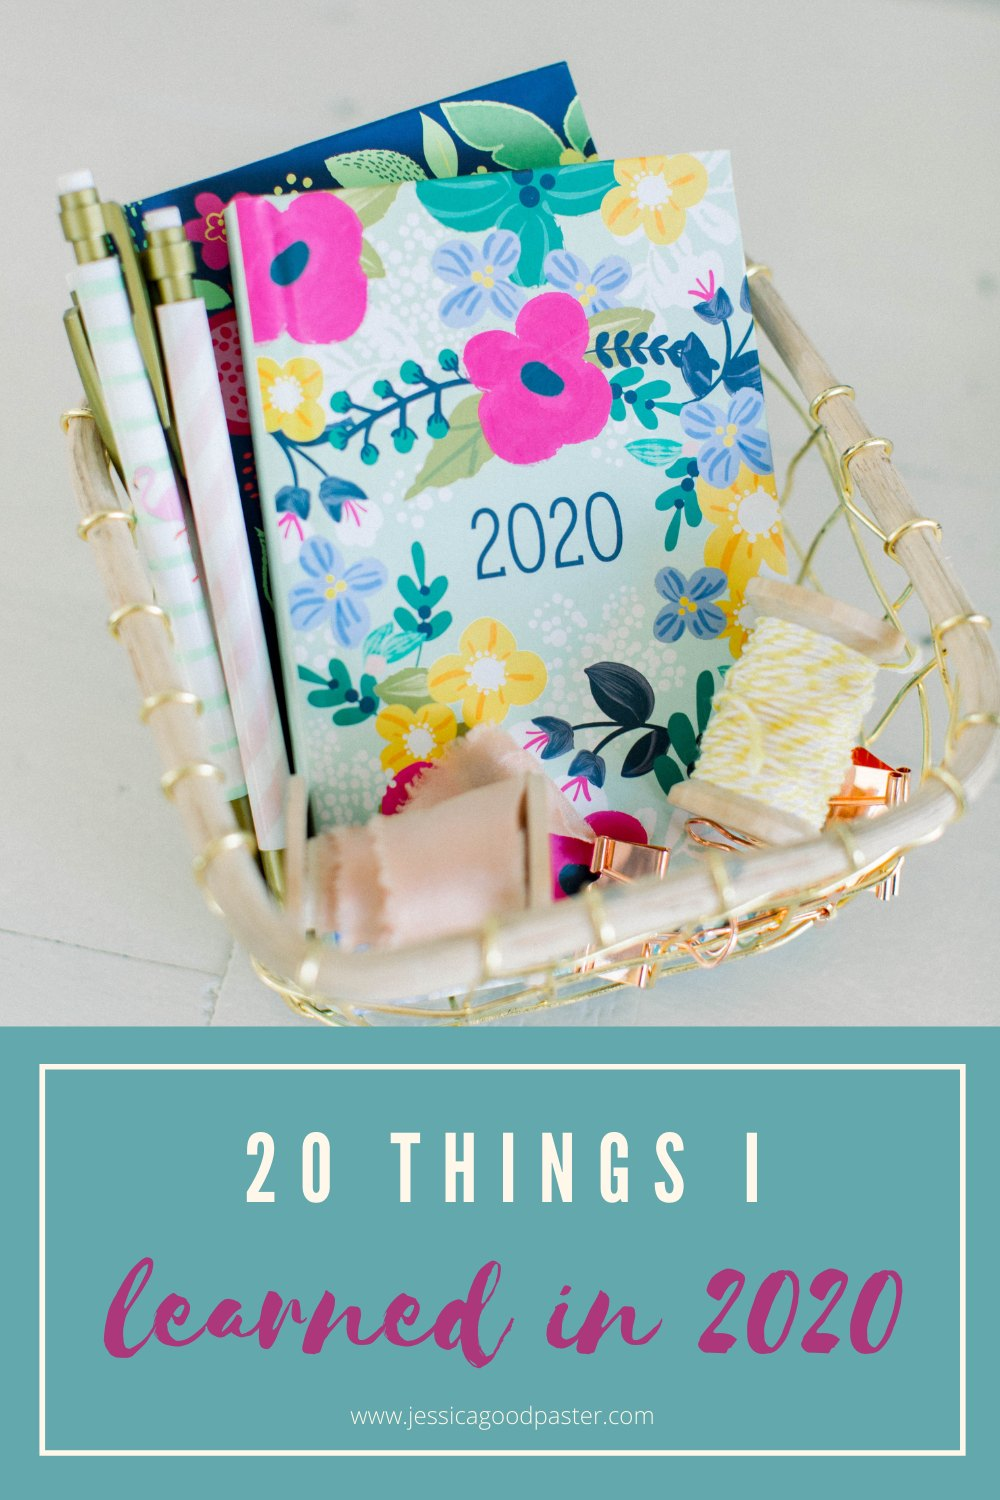 20 Important Things I Learned in 20   jessicagoodpaster.com